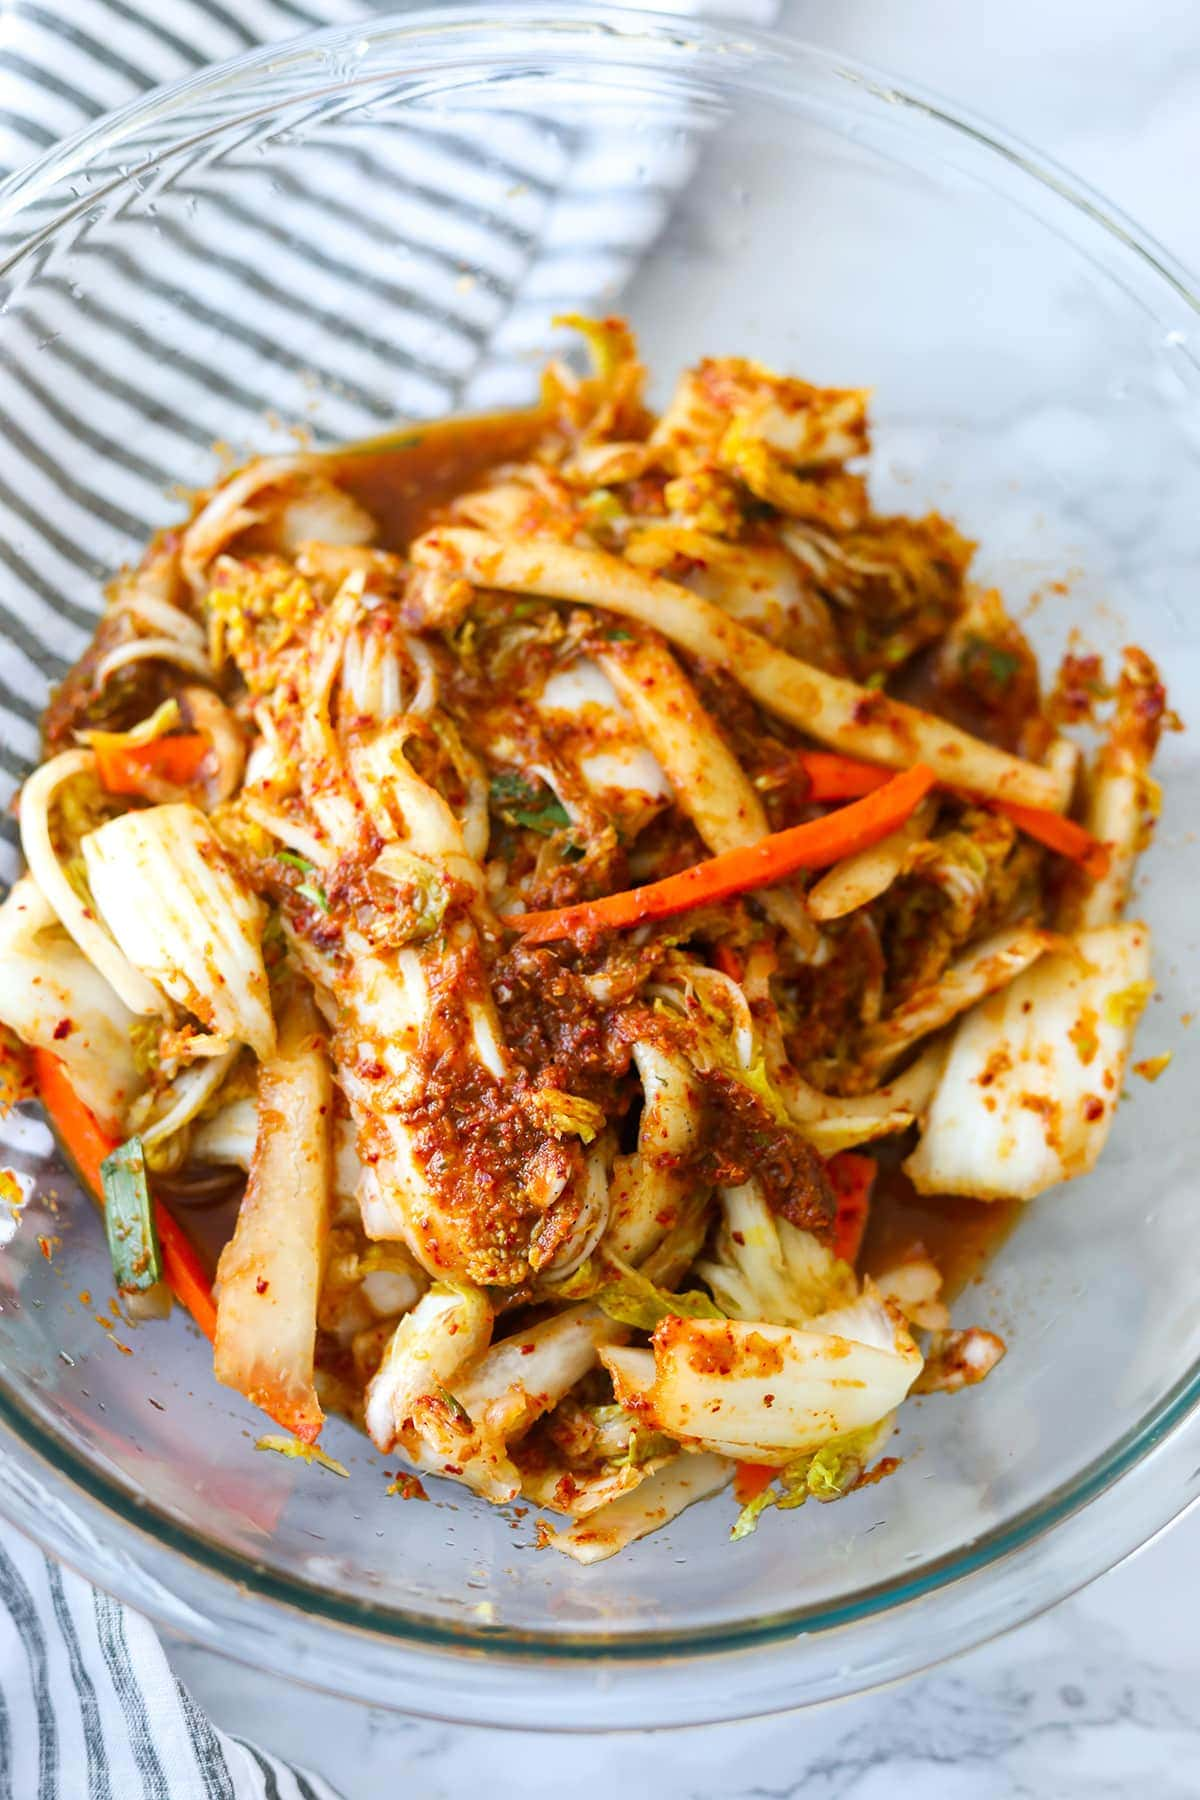 kimchi with paste in a glass bowl with stripe napkin